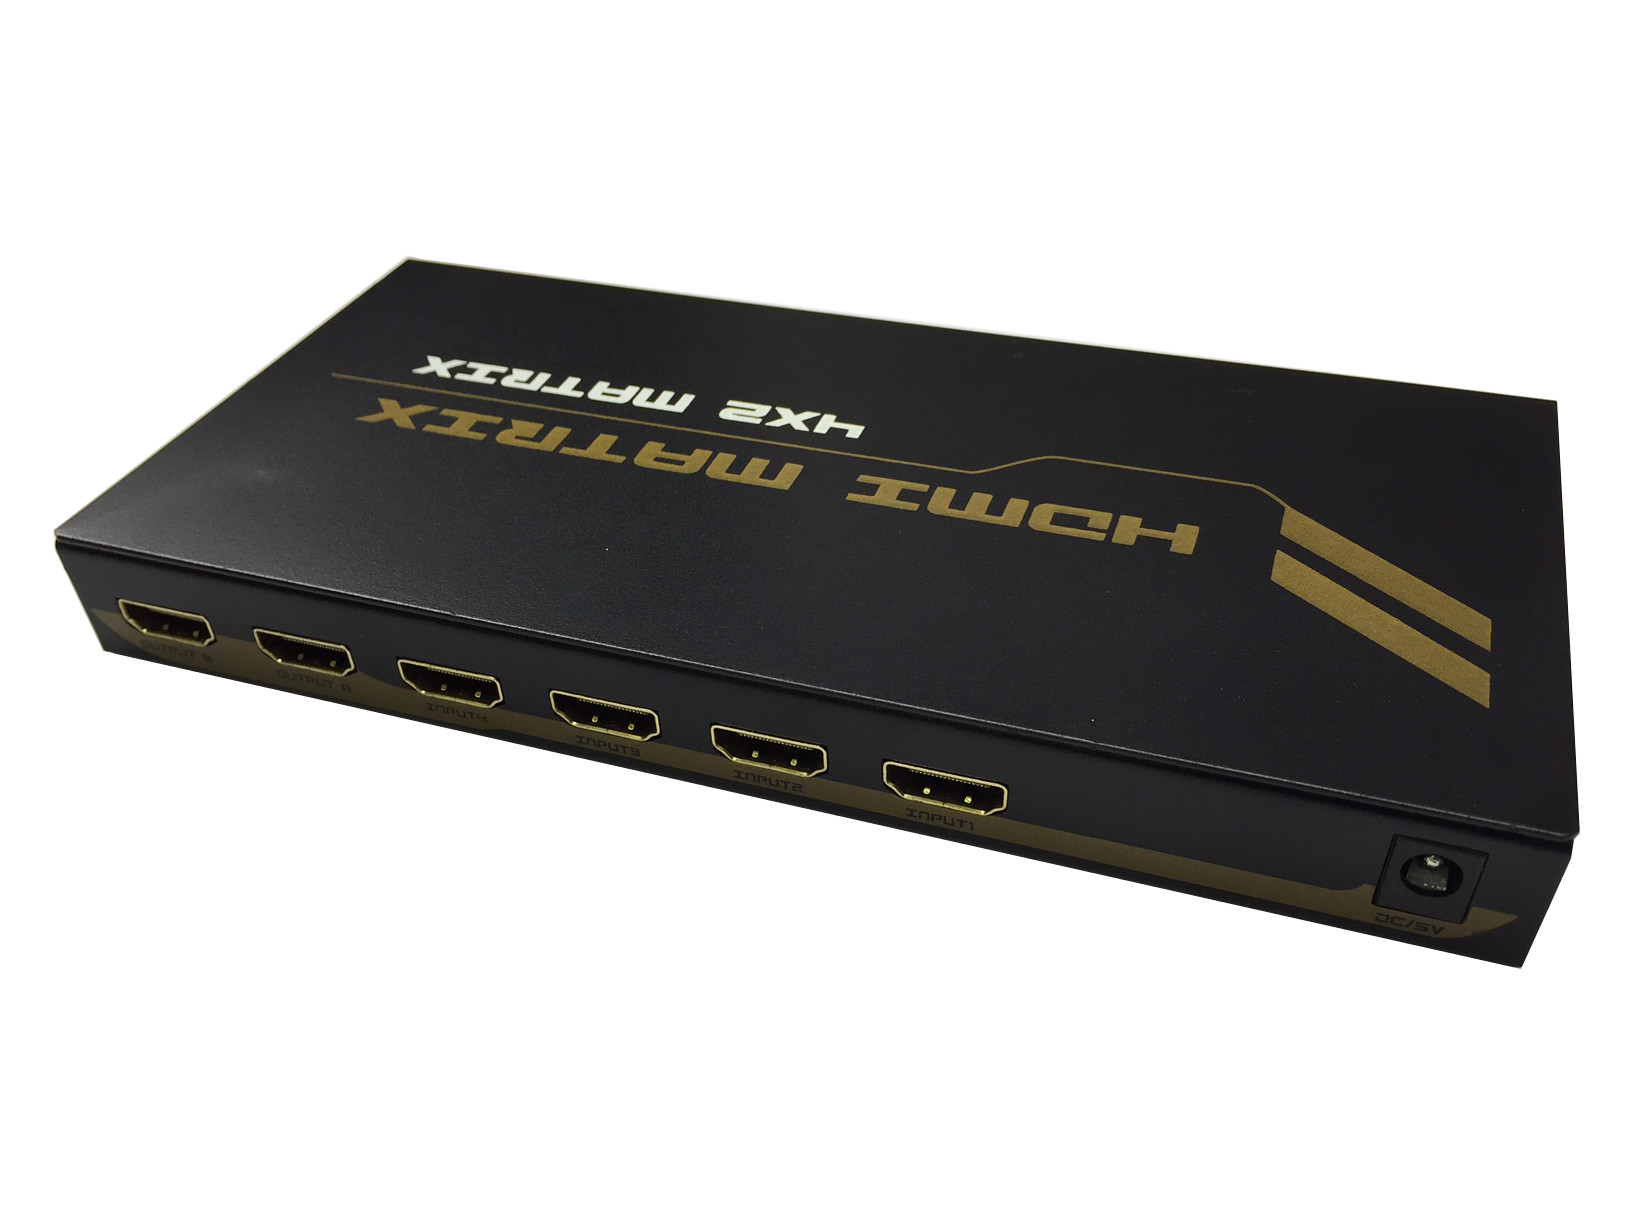 301051 - 4x2 HDMI Matrix Switch